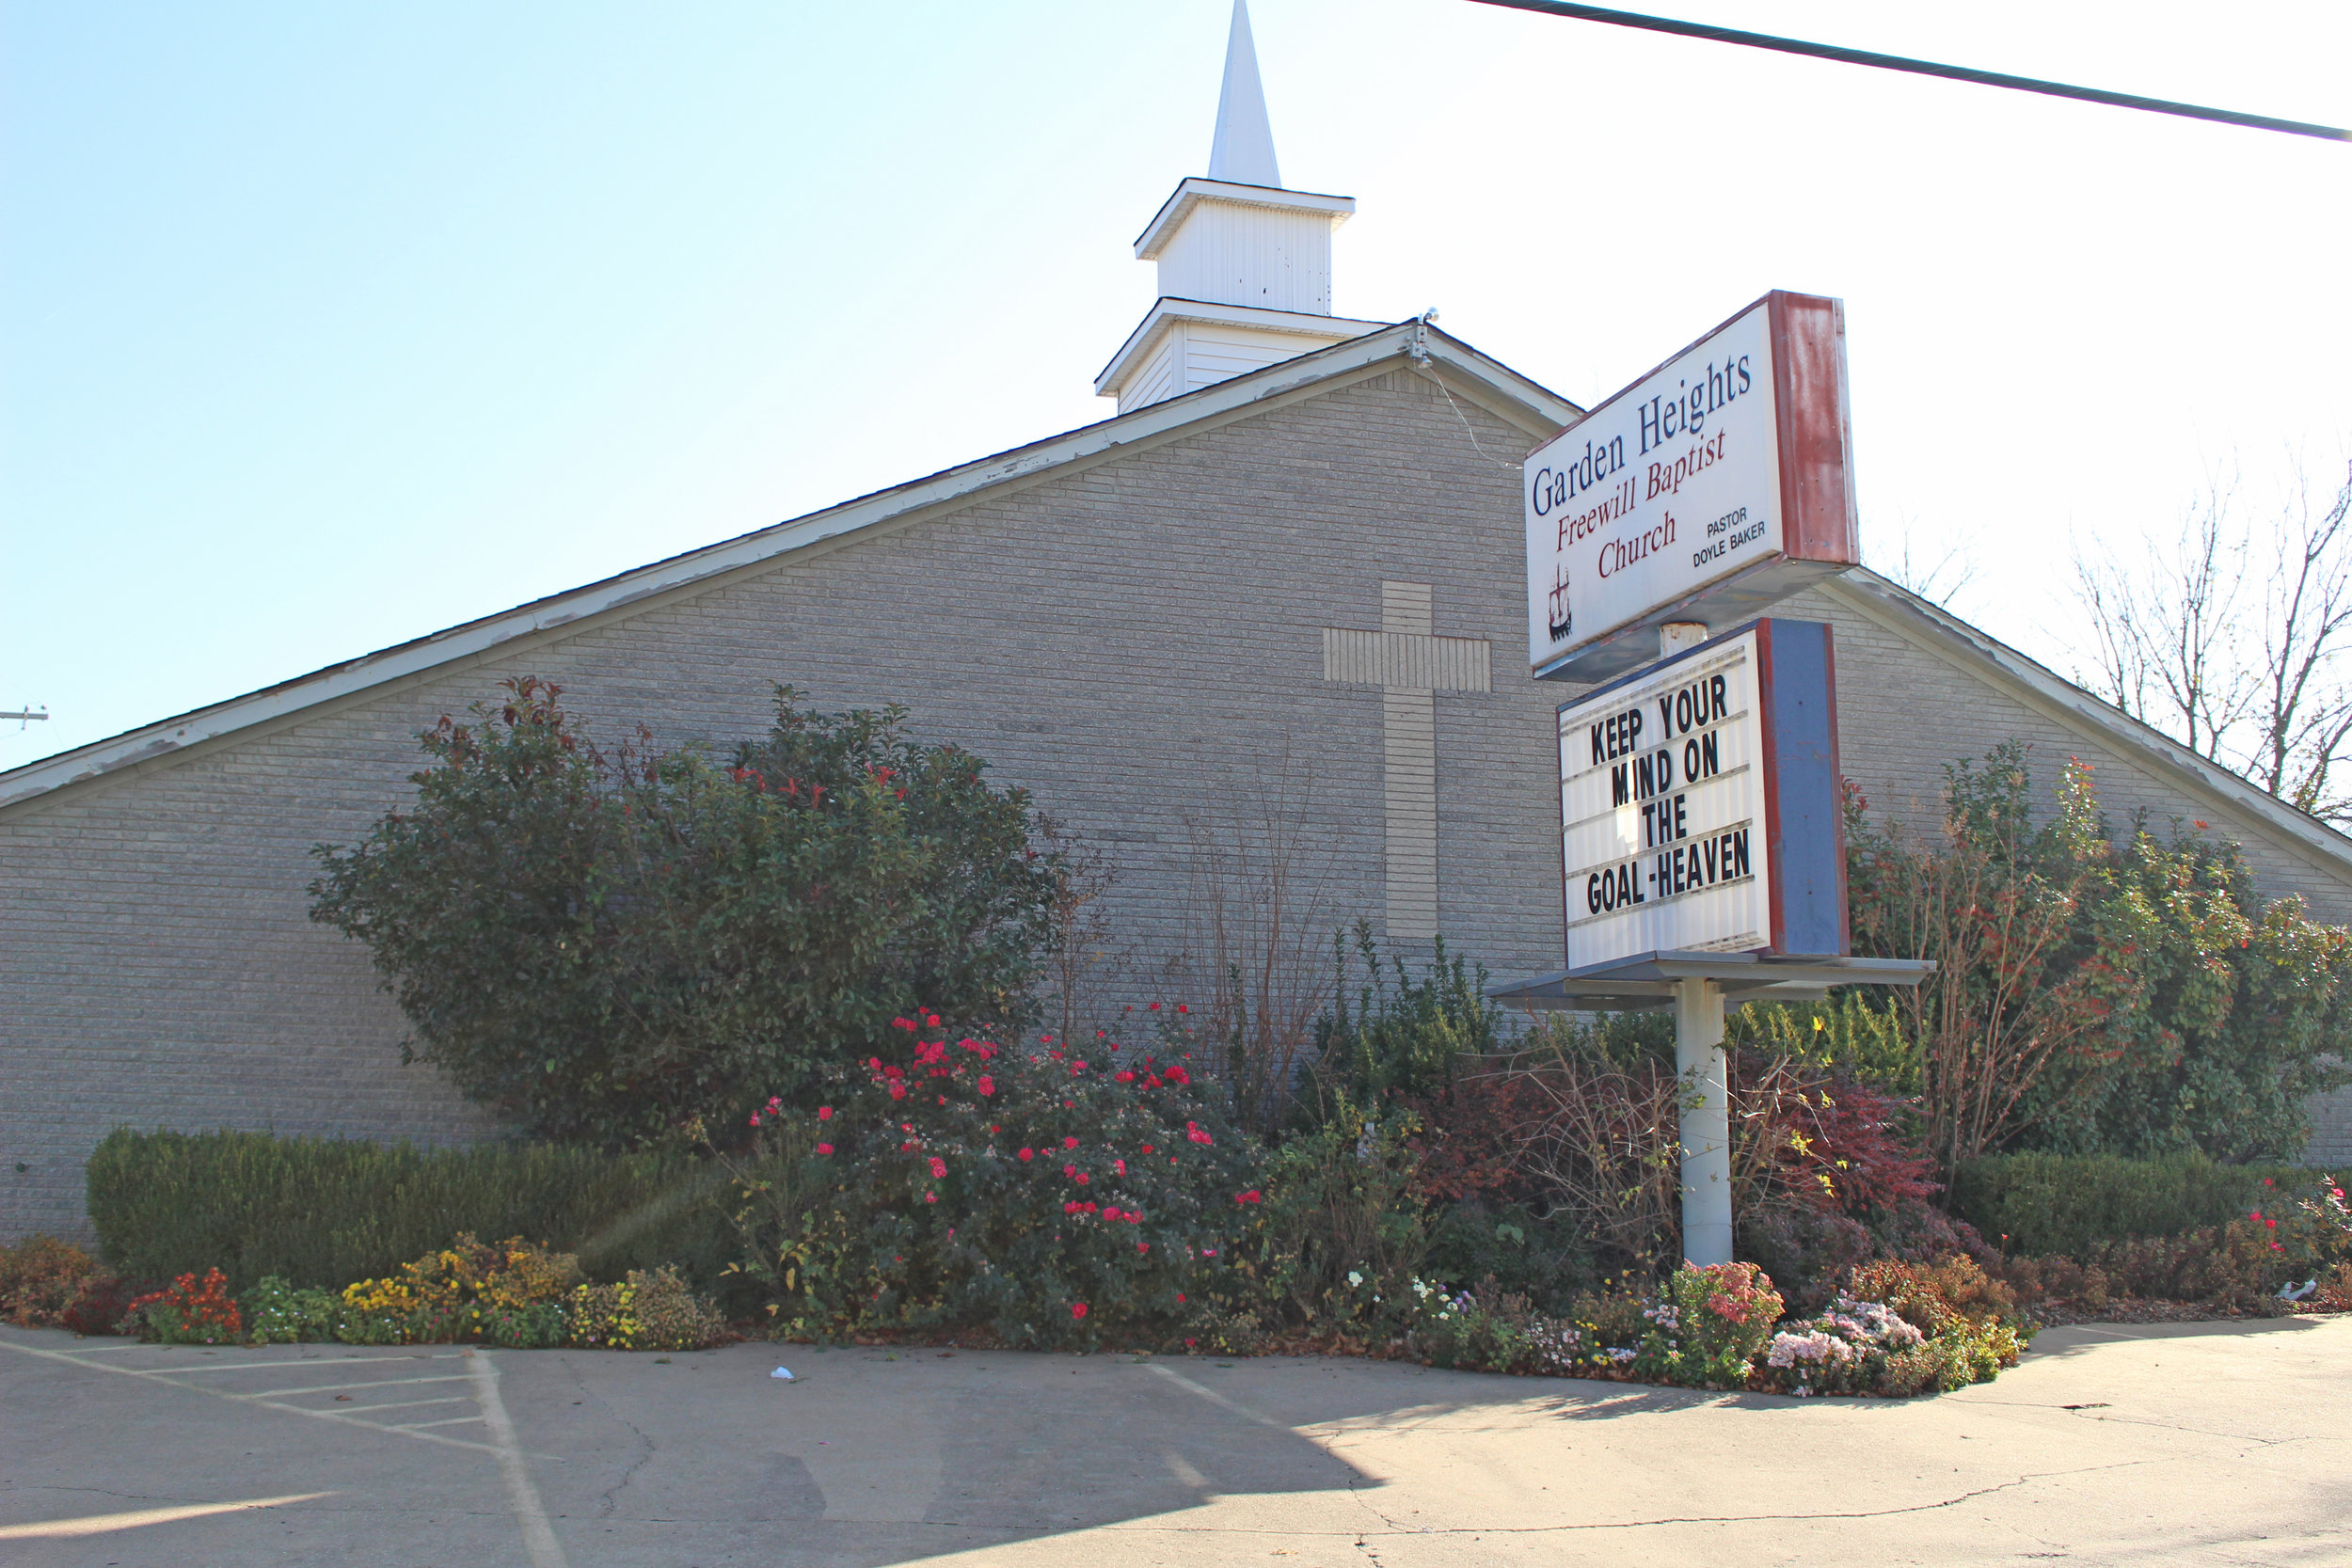 garden heights freewill baptist church - prattville 3415 summit boulevard